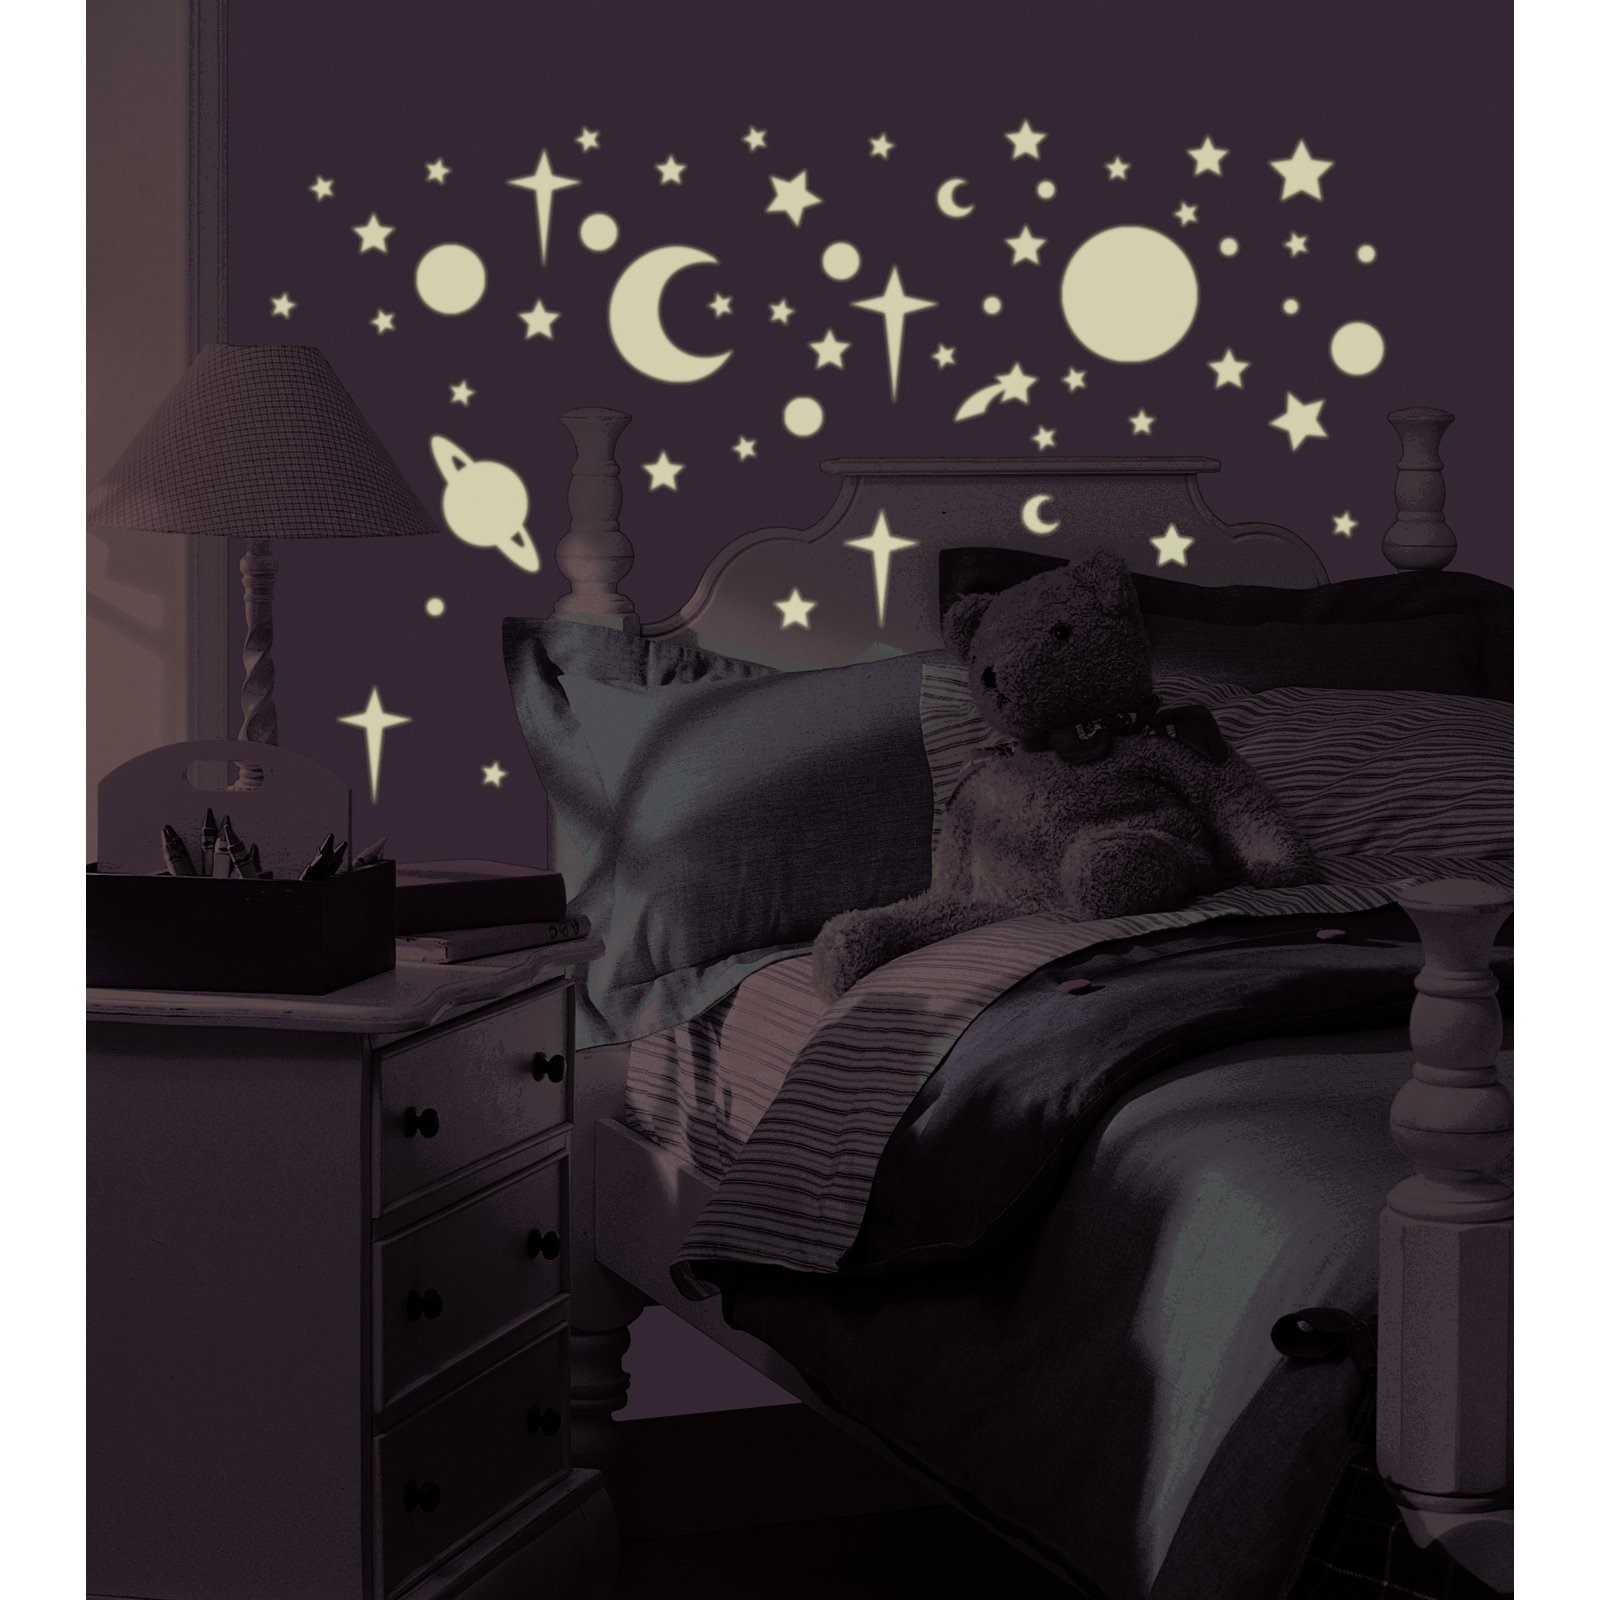 RoomMates - Glow-in-the-Dark Celestial Peel & Stick Wall Decals